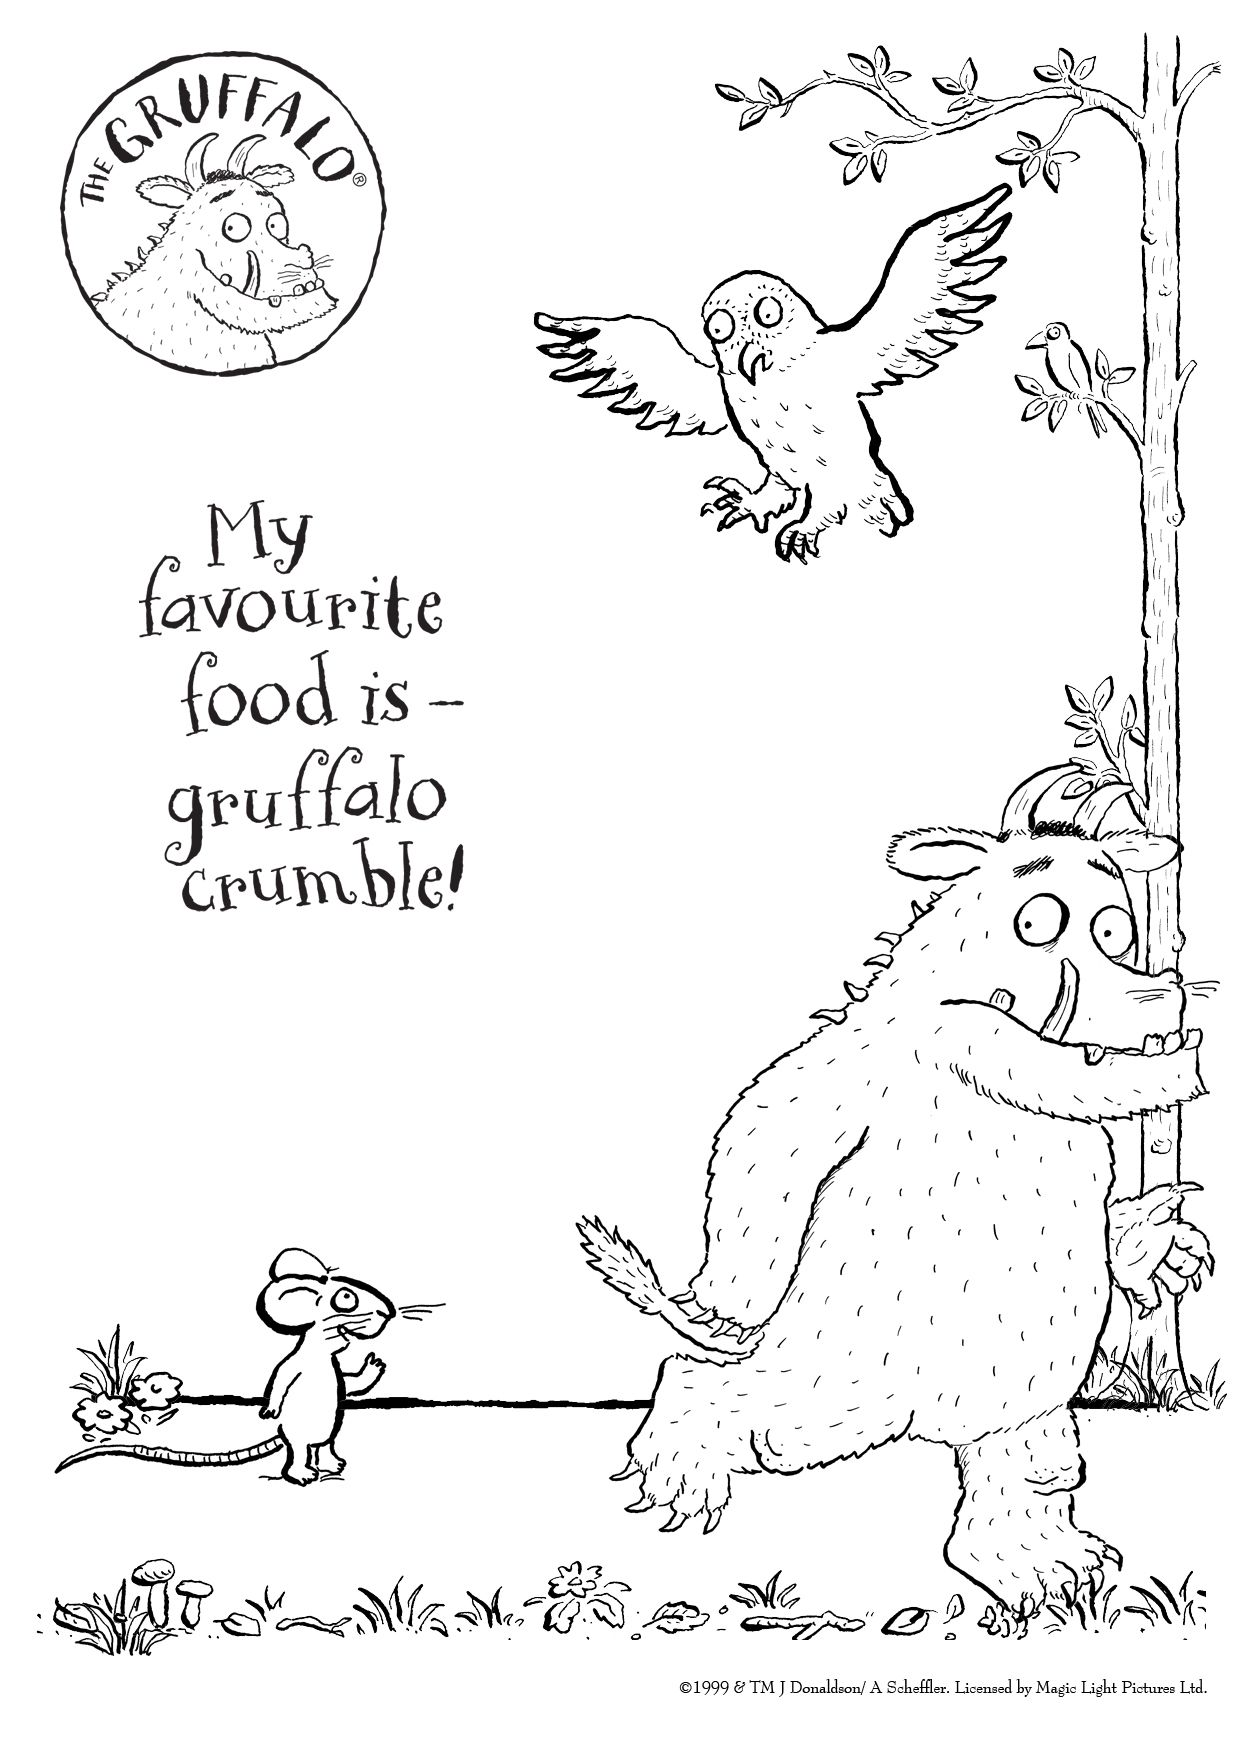 The gruffalo colouring pages to print - Here S A Brand New Colour In Gruffalo Sheet For You To Print Out Enjoy The Gruffalostorytellingbrand Newcoloringstories